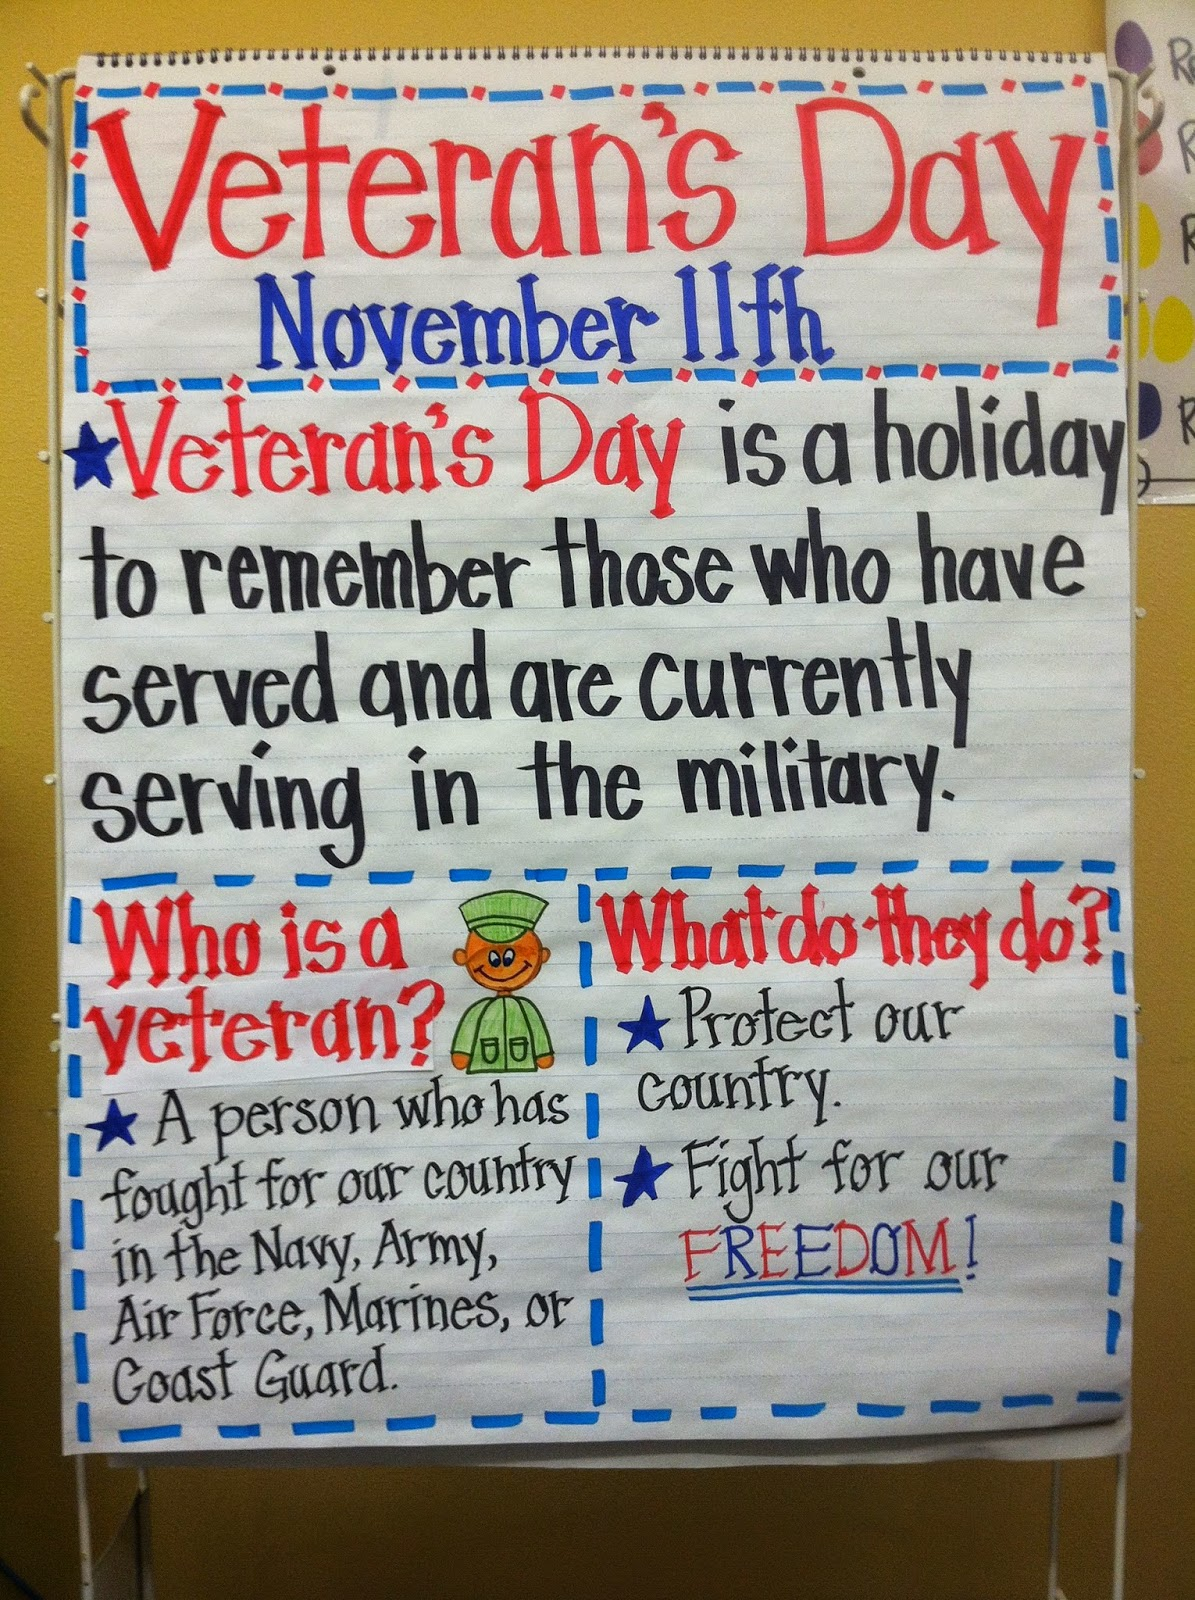 veterans day essay contest Veteran's day essay contest  when veteran's day is upon the nation and i read about a situation in which veterans were not recognized or were not honored, i am .